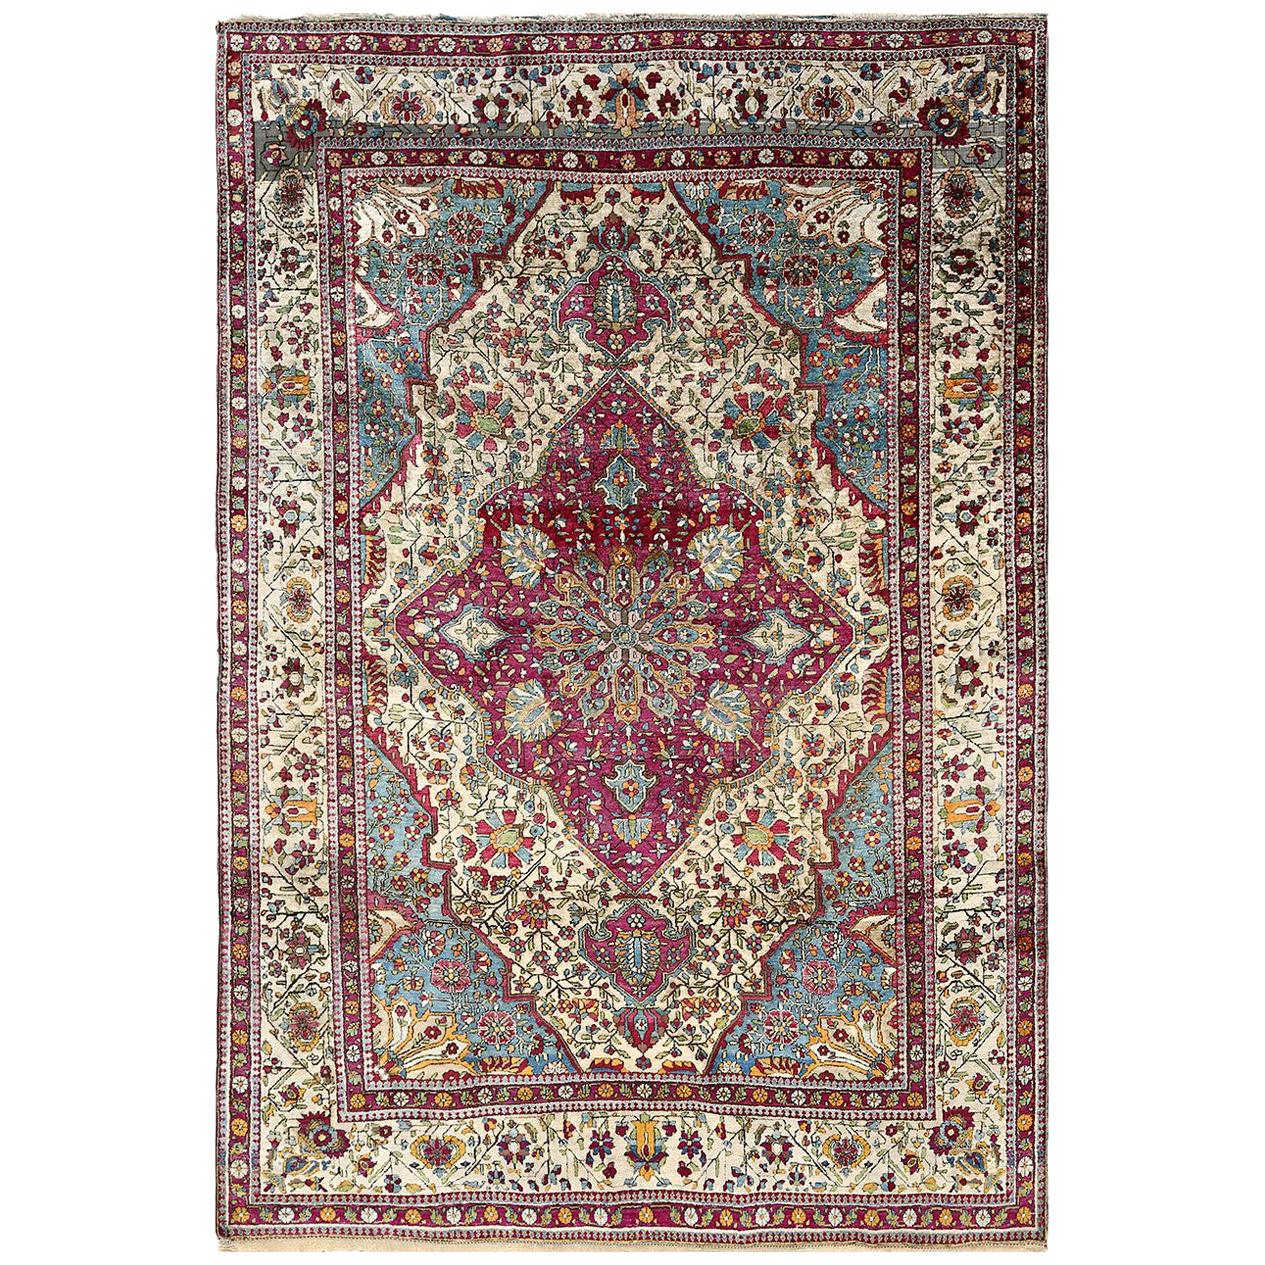 Antique Silk Mohtasham Kashan Persian Rug. Size: 4 ft 6 in x 6 ft 8 in